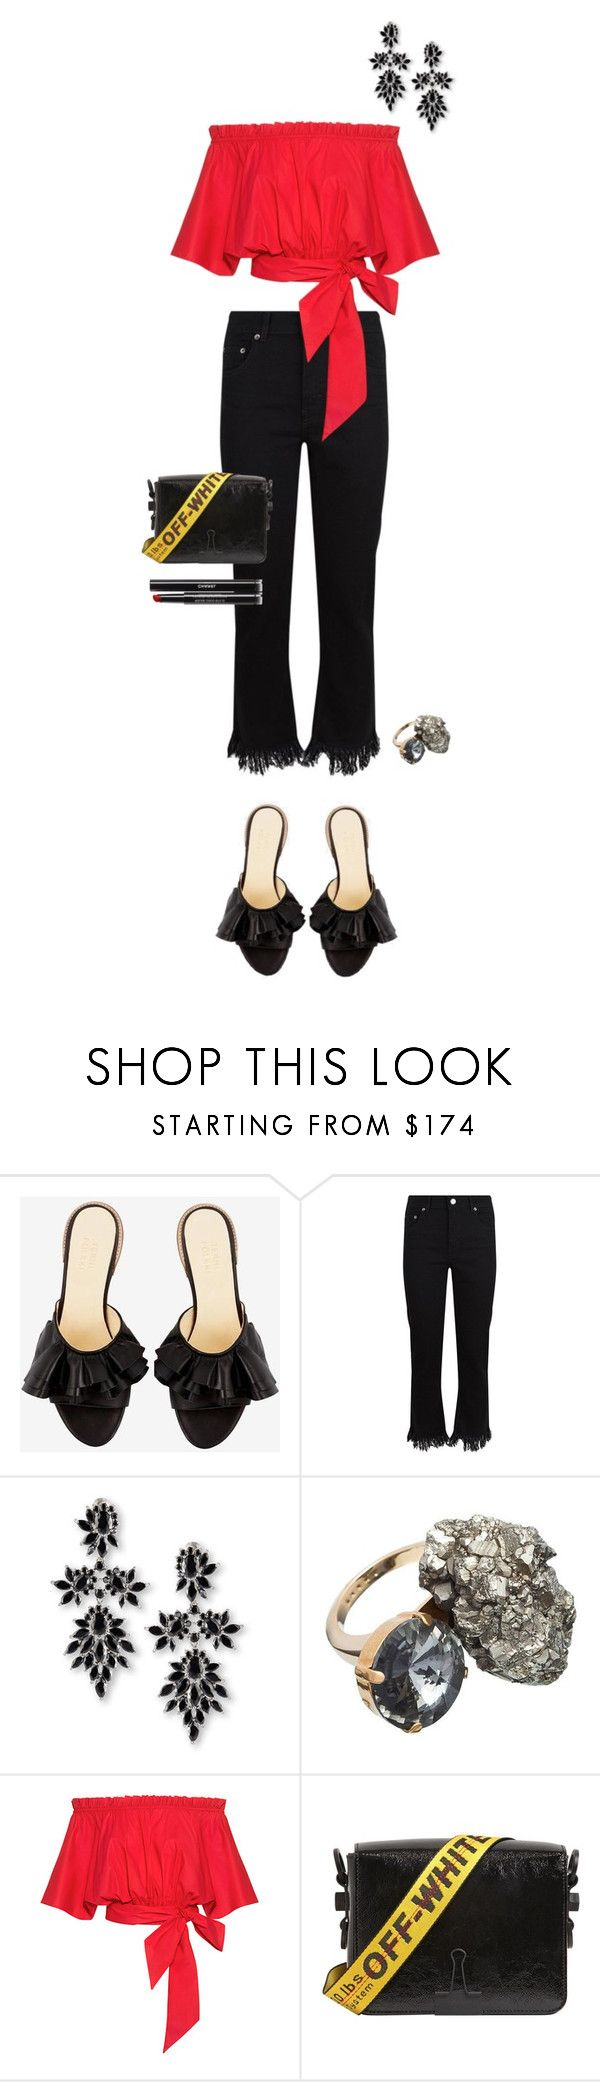 """""""Moments"""" by solespejismo ❤ liked on Polyvore featuring Maje, Fallon, Marni, Saloni, Off-White and Chanel"""